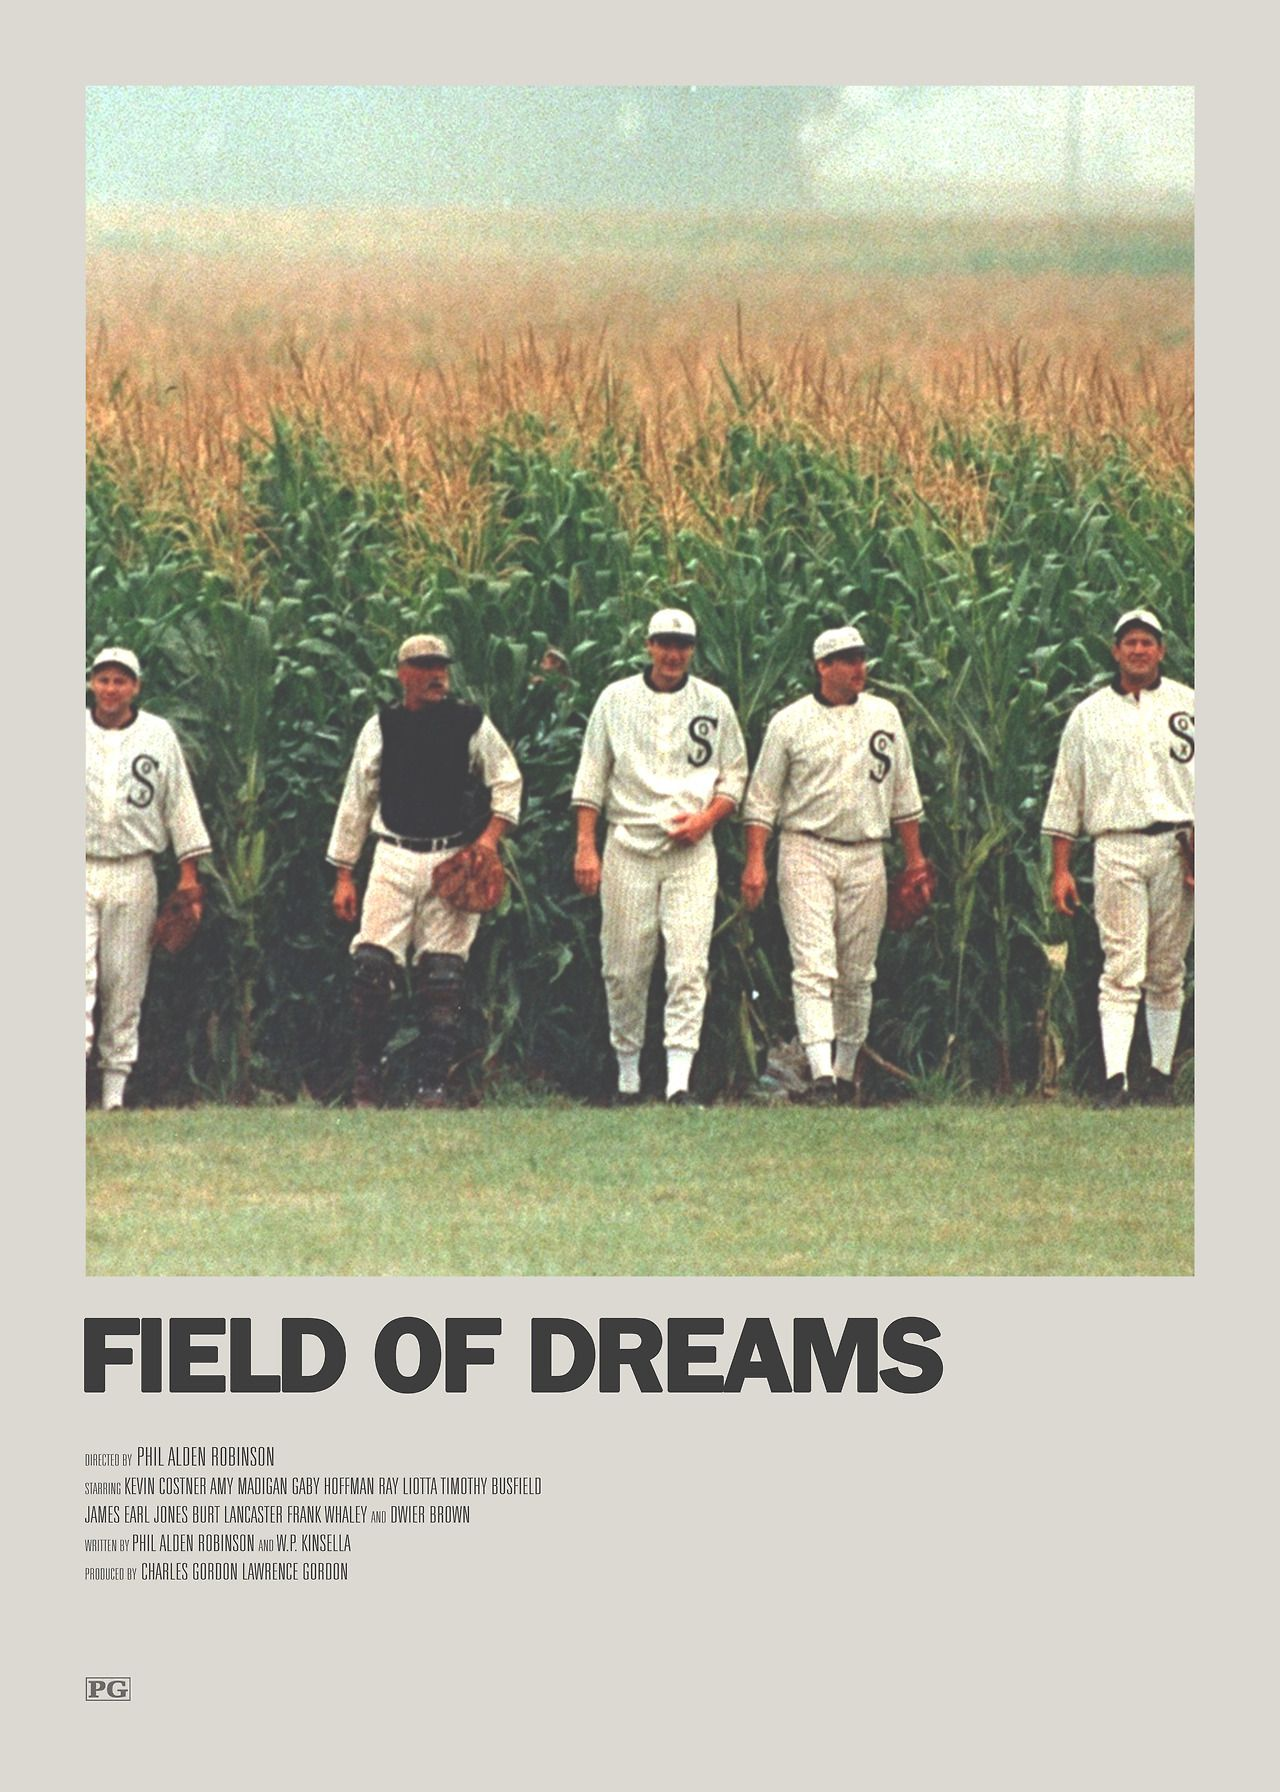 Field of Dreams Minimal Movie Poster | Minimal movie posters, Movie poster  wall, Film poster design